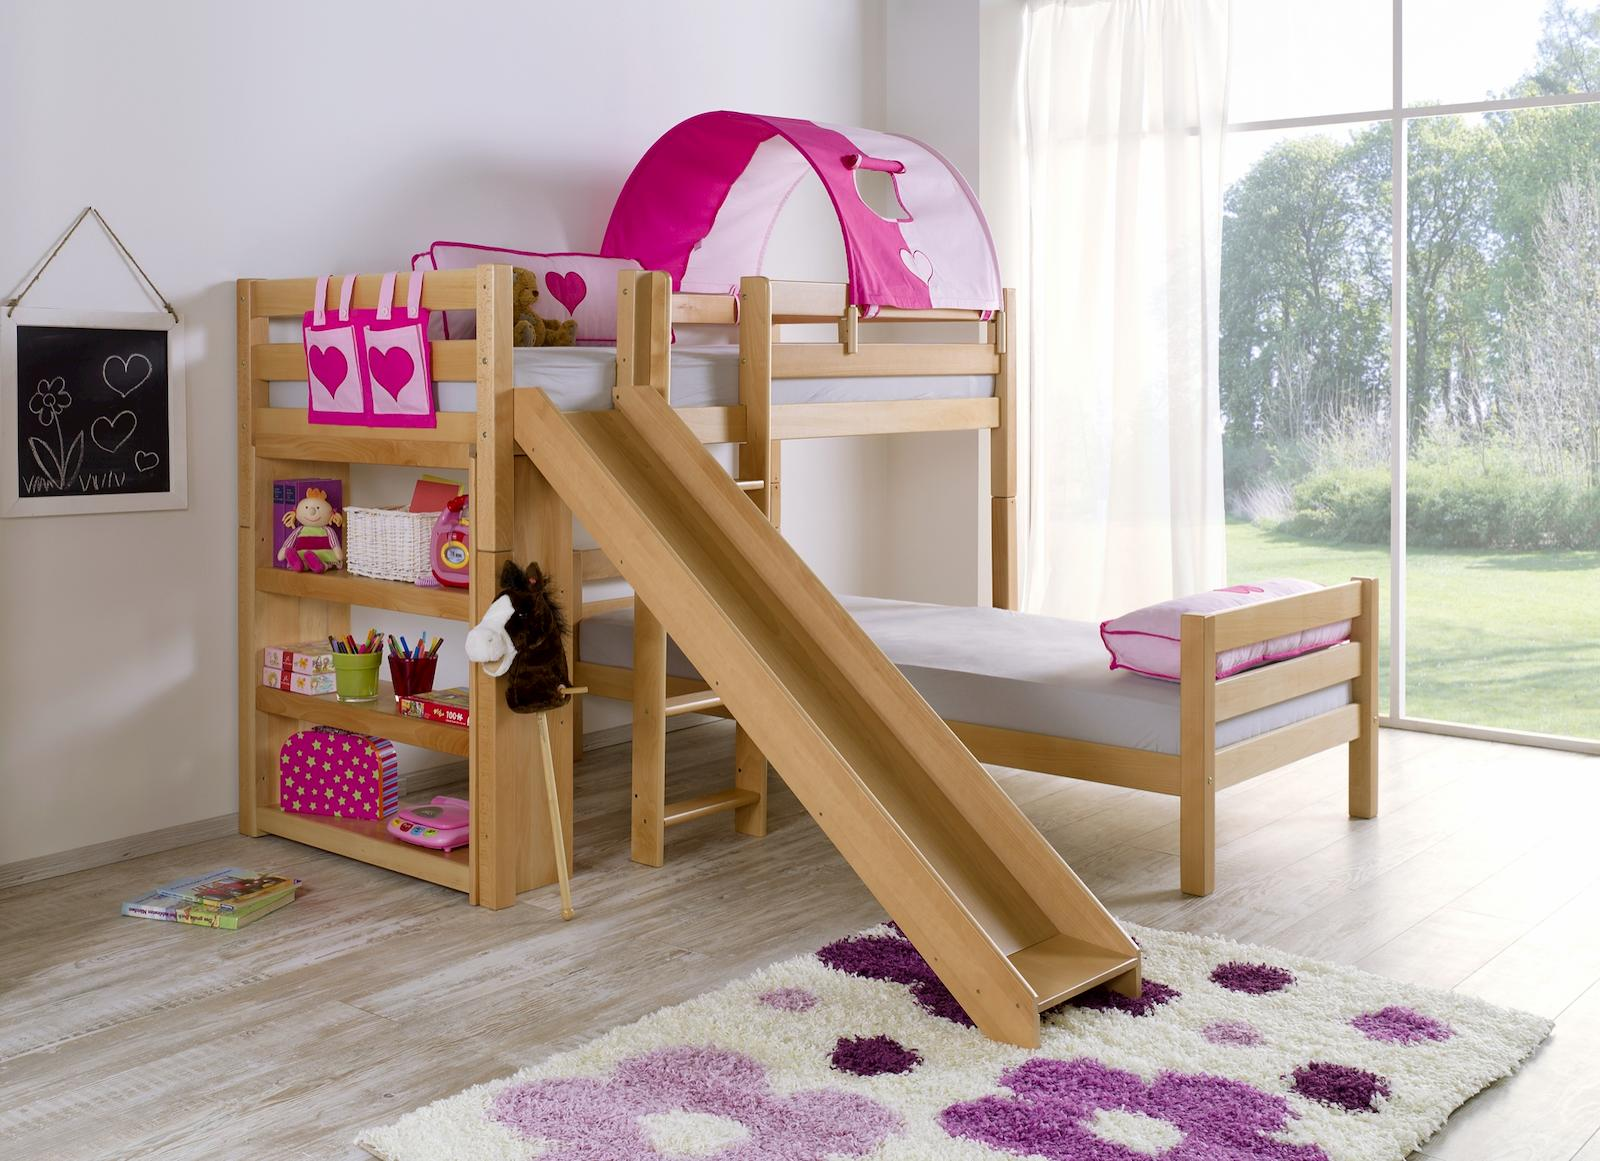 etagenbett mit rutsche beni l kinderbett spielbett bett natur stoff lila wei kids teens. Black Bedroom Furniture Sets. Home Design Ideas